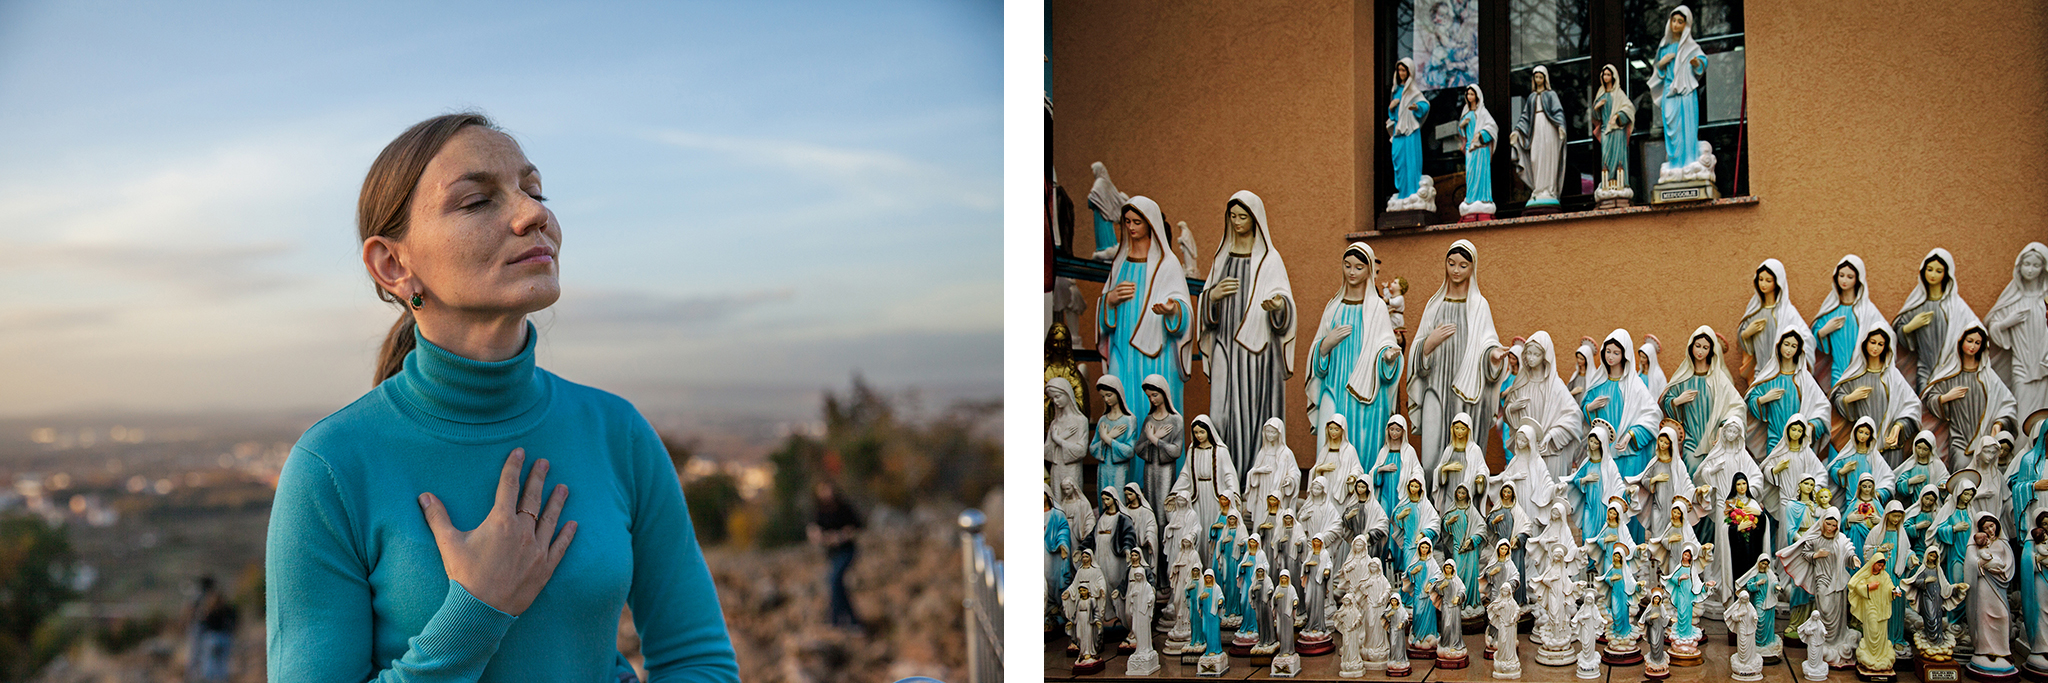 """Anna Pidlisna, 32, of Ukraine, says she came to Medjugorje—where plaster statues can fetch about 30 euros apiece—after receiving a vision of Mary. Apparitions aren't the only Marian sign; many say they've seen a """"spinning sun."""" Physicist Artur Wirowski has an earthly explanation: It can occur when sunlight reflects and refracts charged ice crystals vibrating in sync within the clouds."""